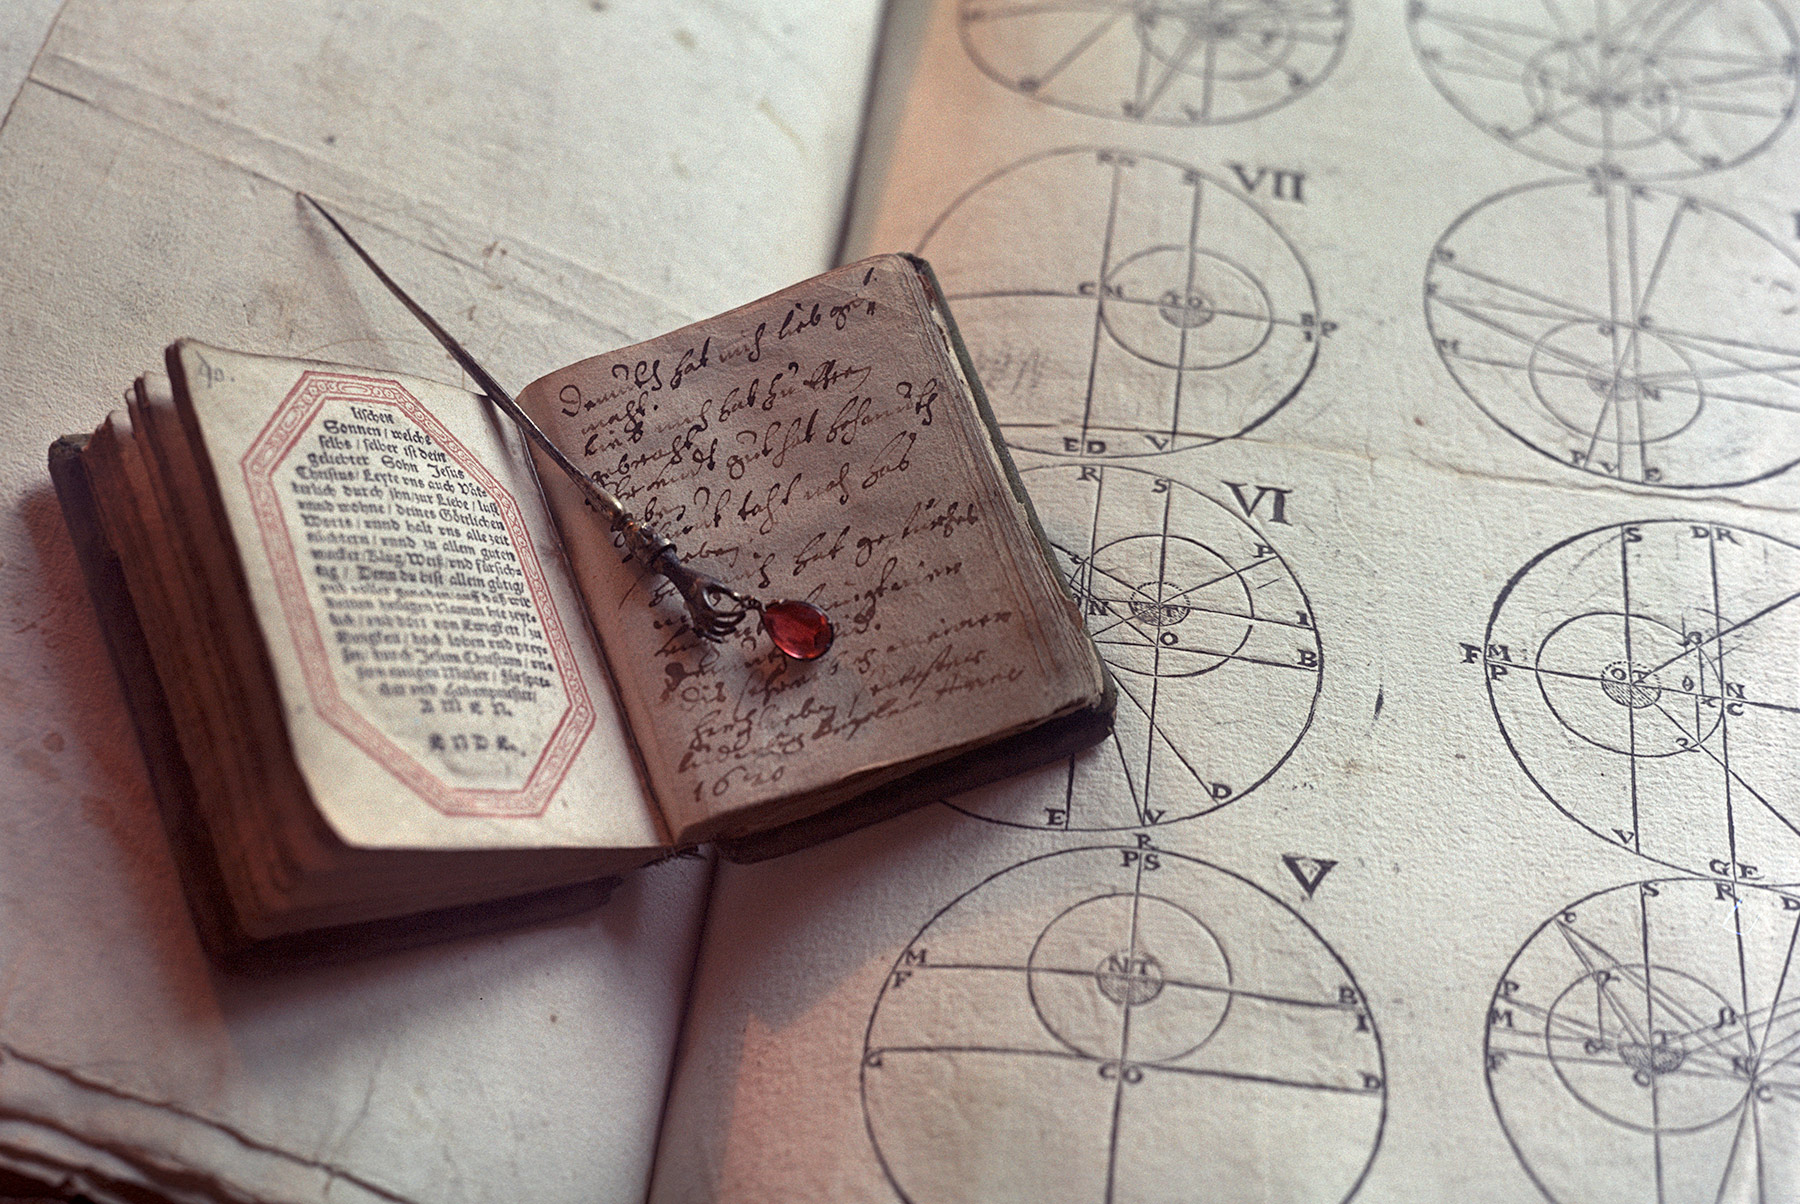 Johannes Kepler's prayer book and his wife's hairpin on a manuscript of his work.